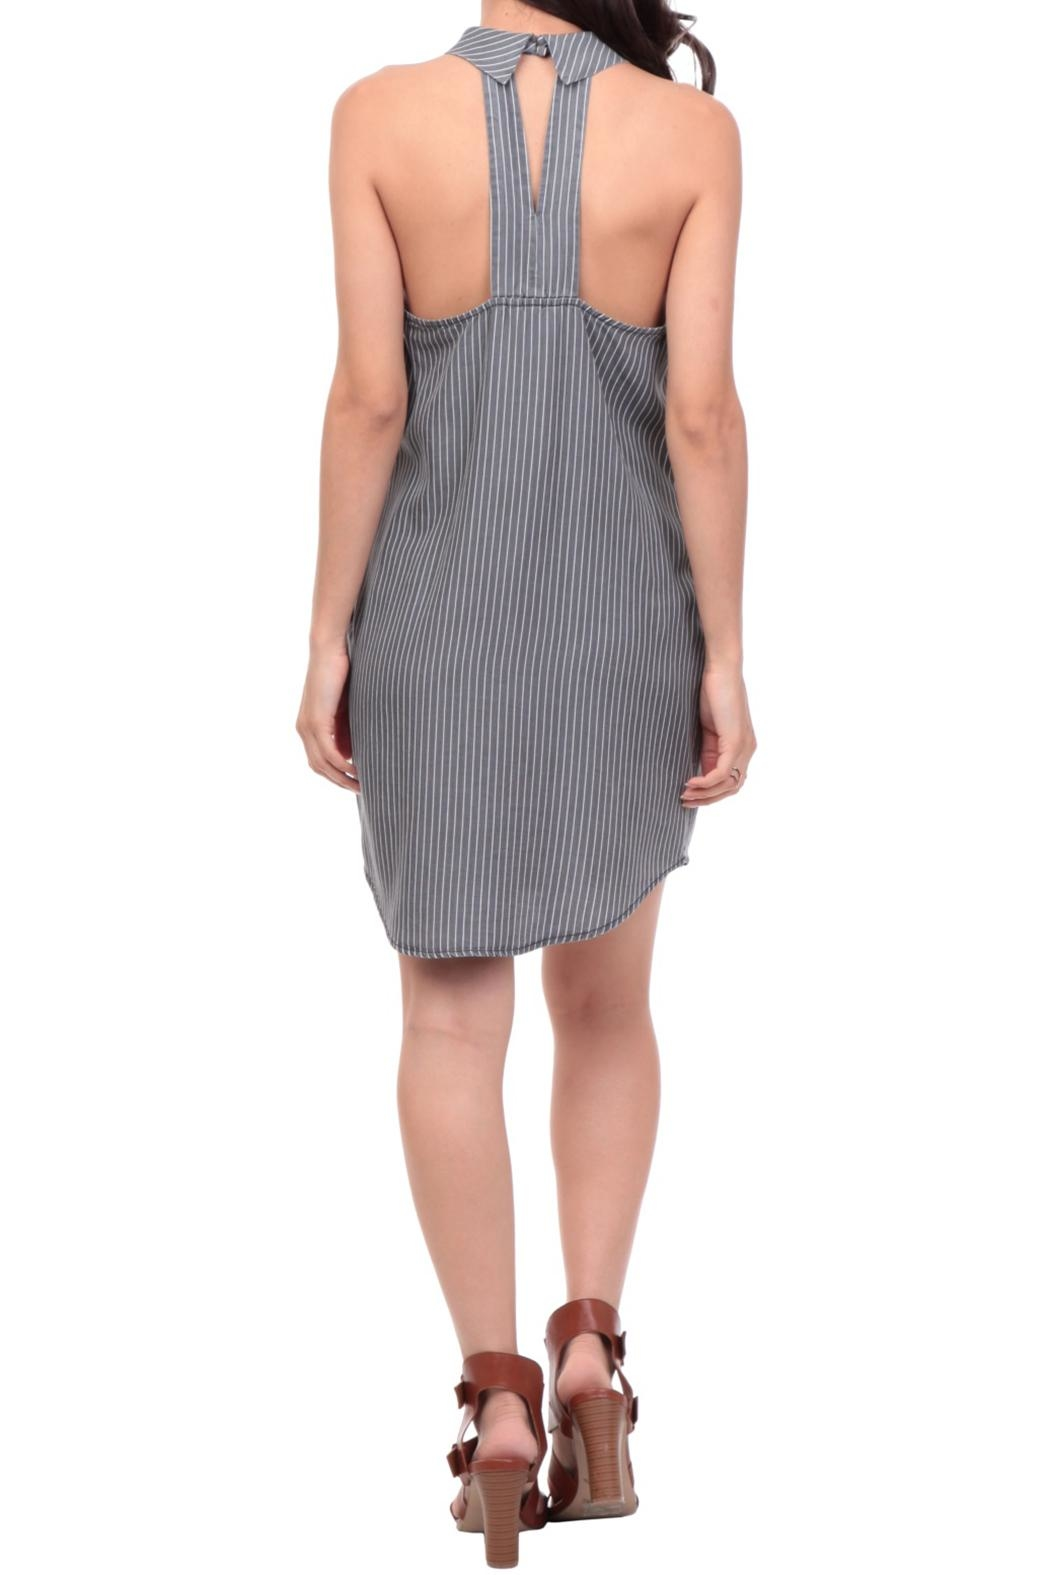 Naked Zebra Striped Keyhole Dress - Back Cropped Image